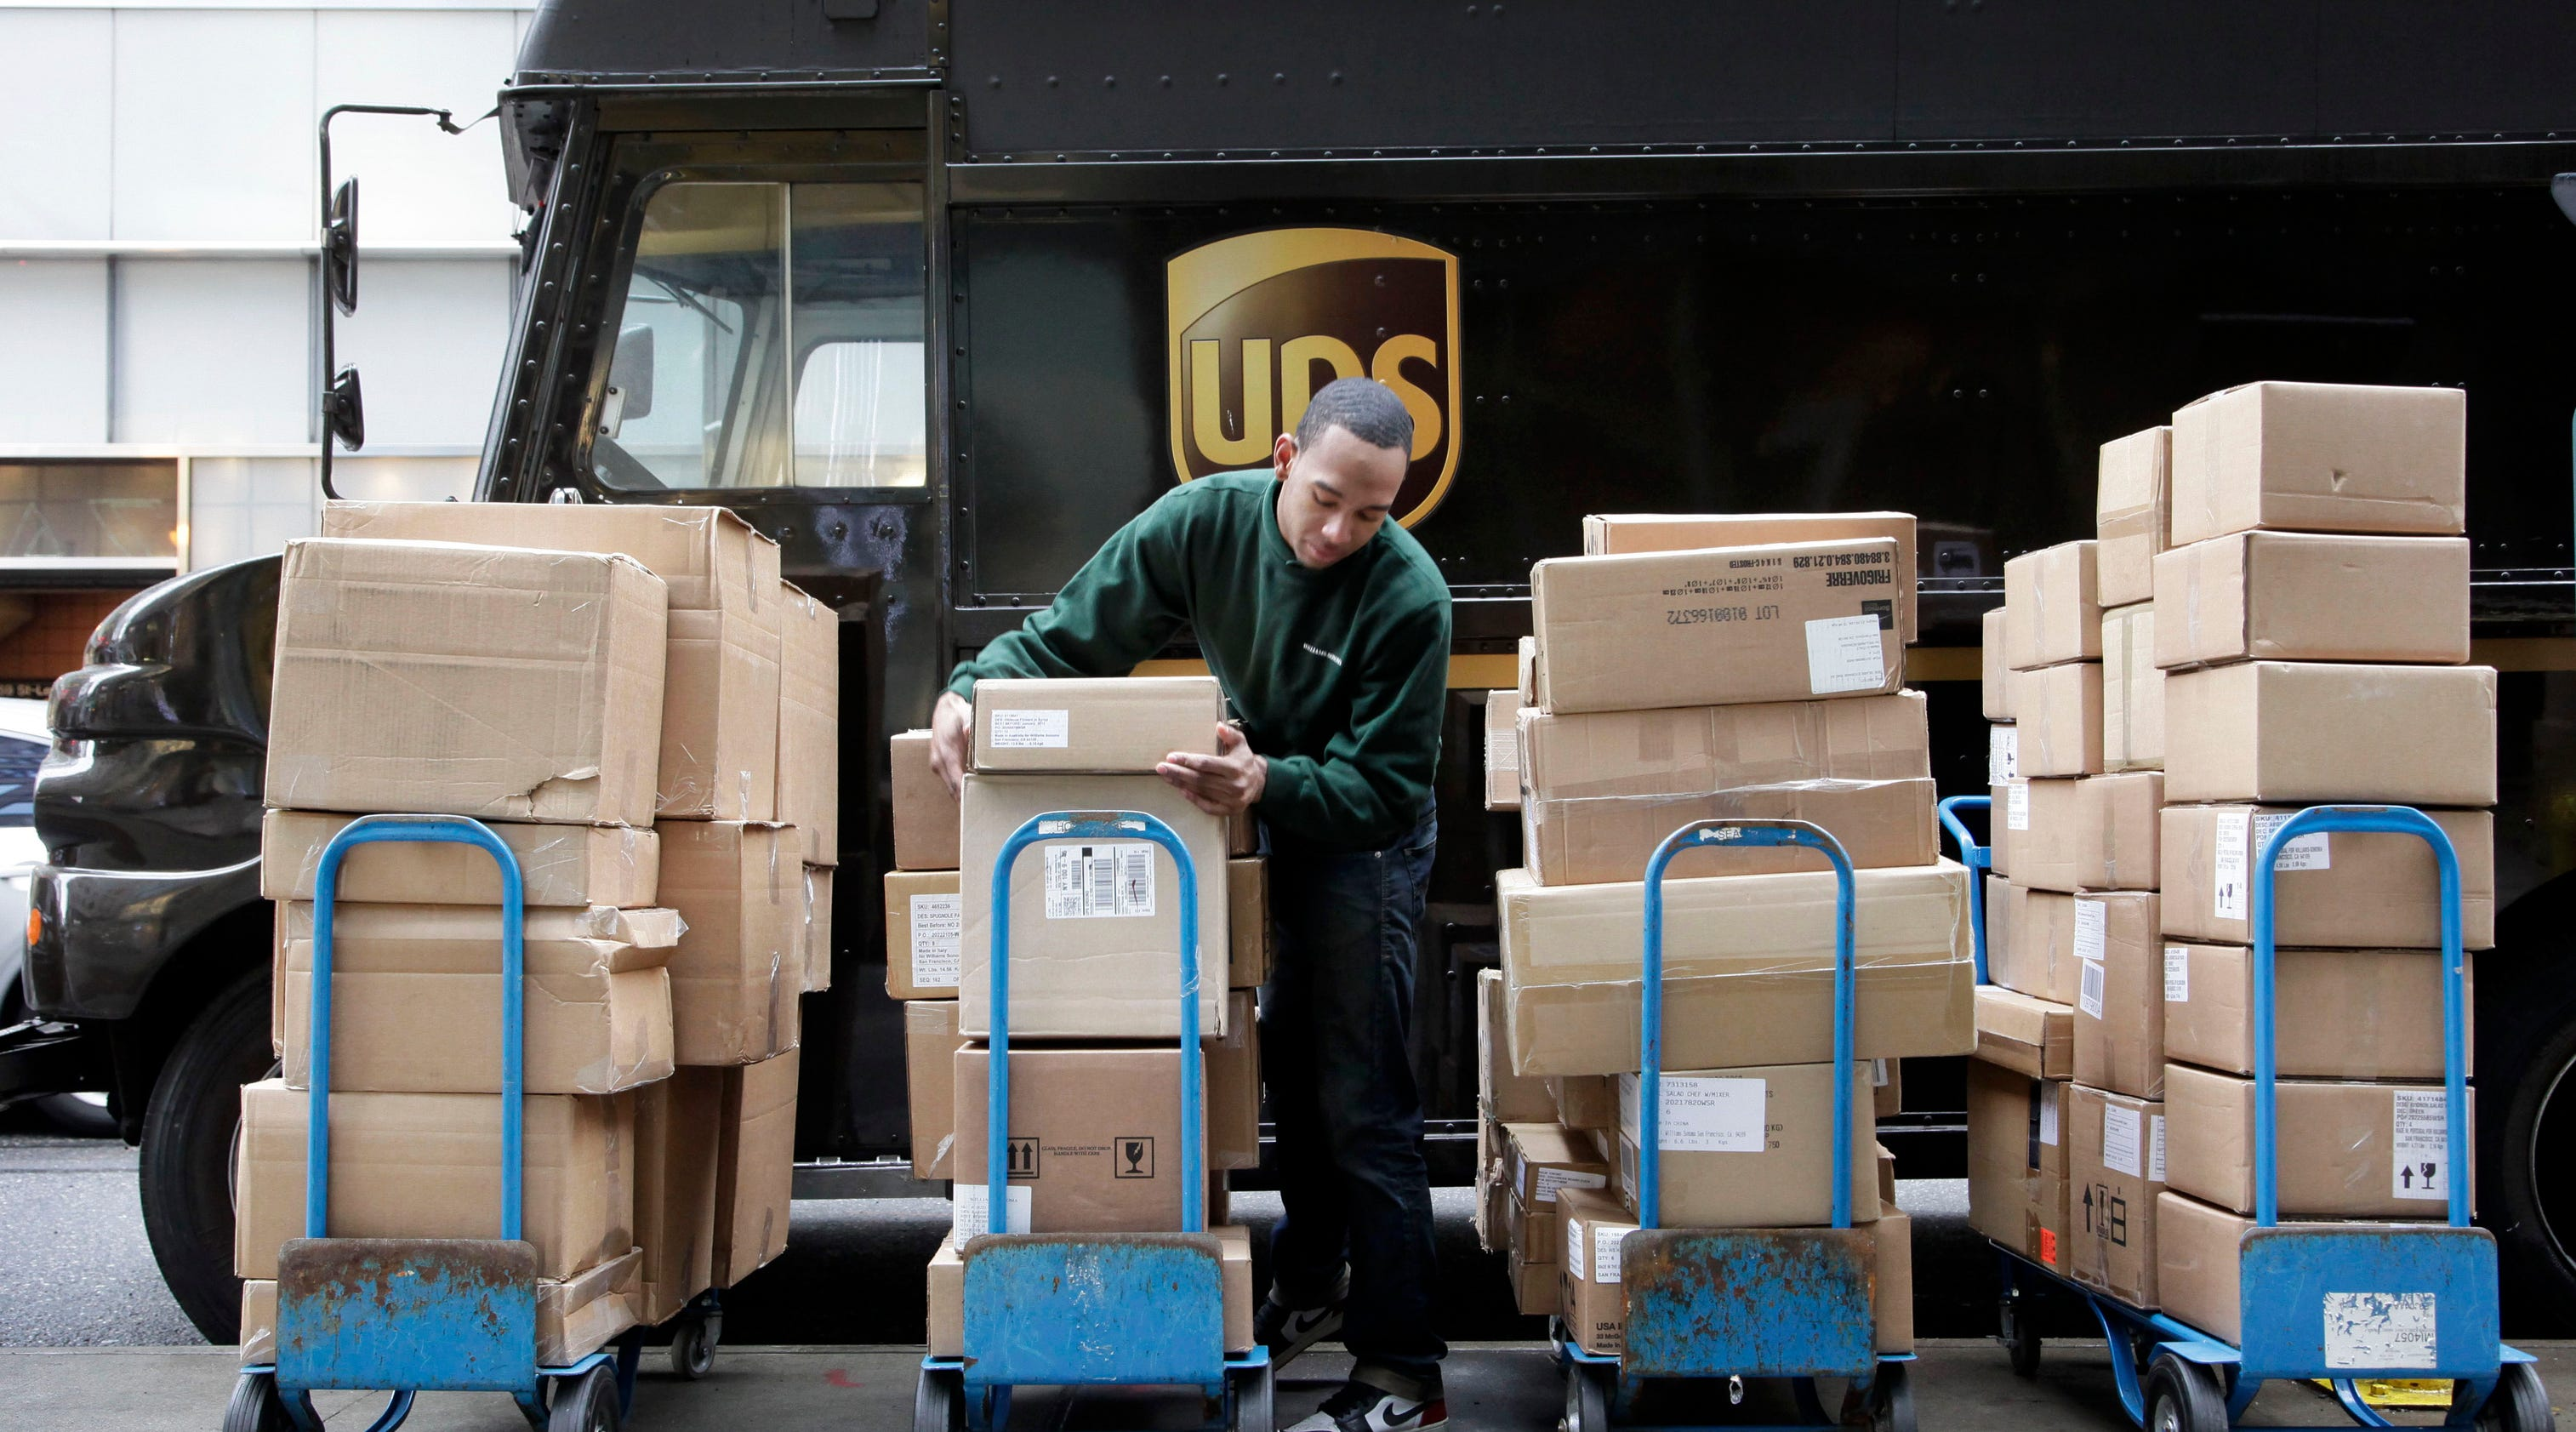 A pilot for a company that delivers goods for Amazon told The Washington Post that shipping delays are